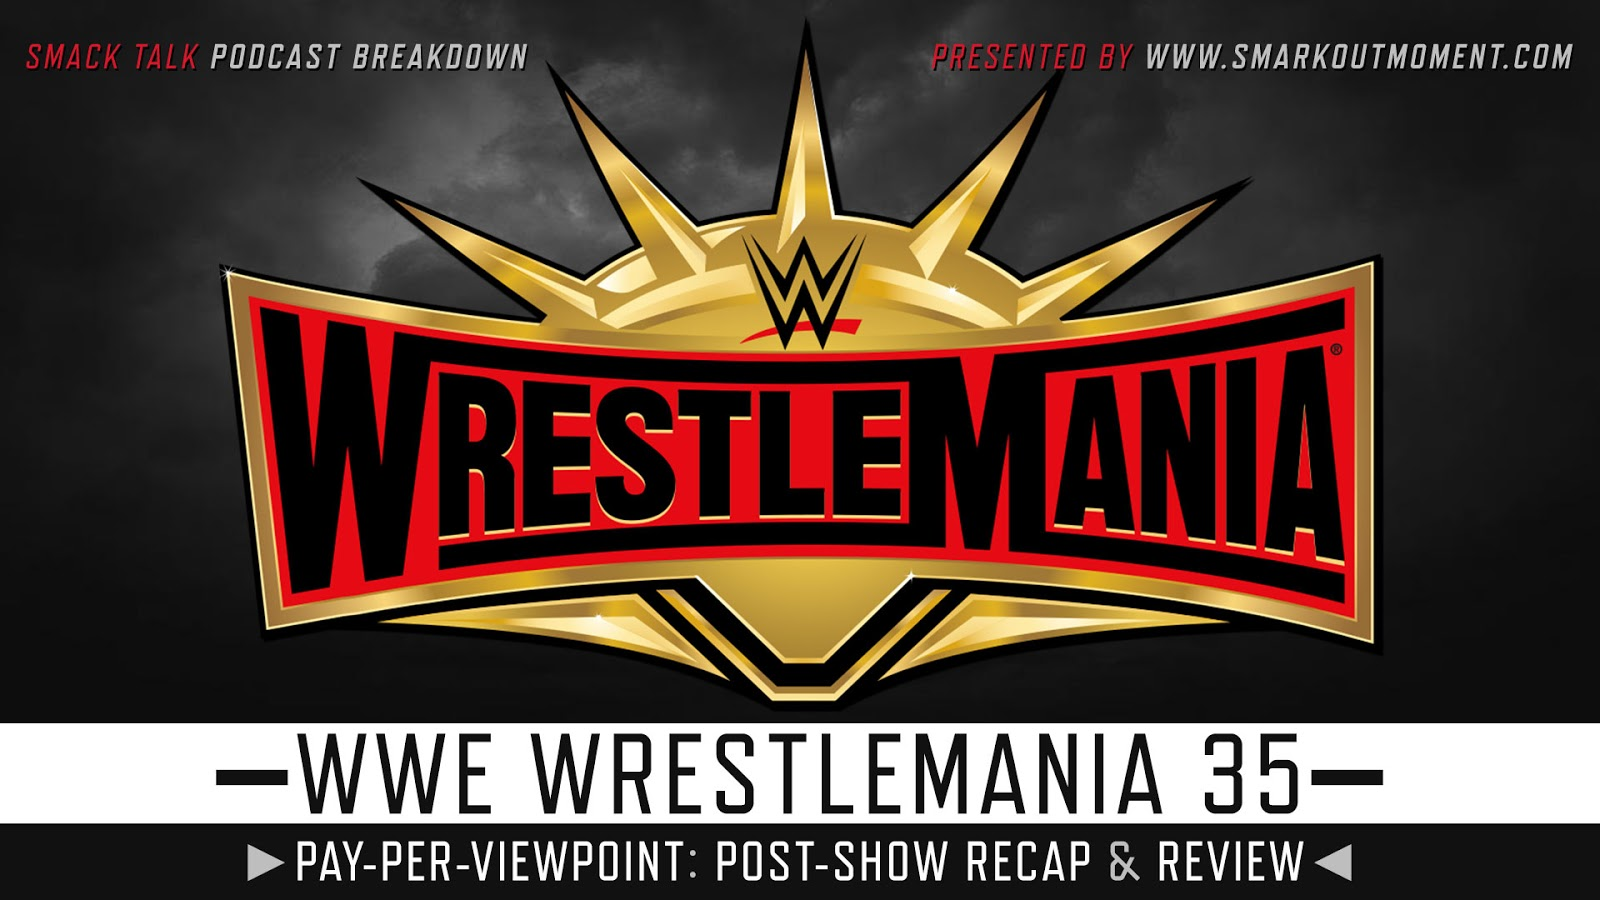 WWE WrestleMania 35 Recap and Review Podcast